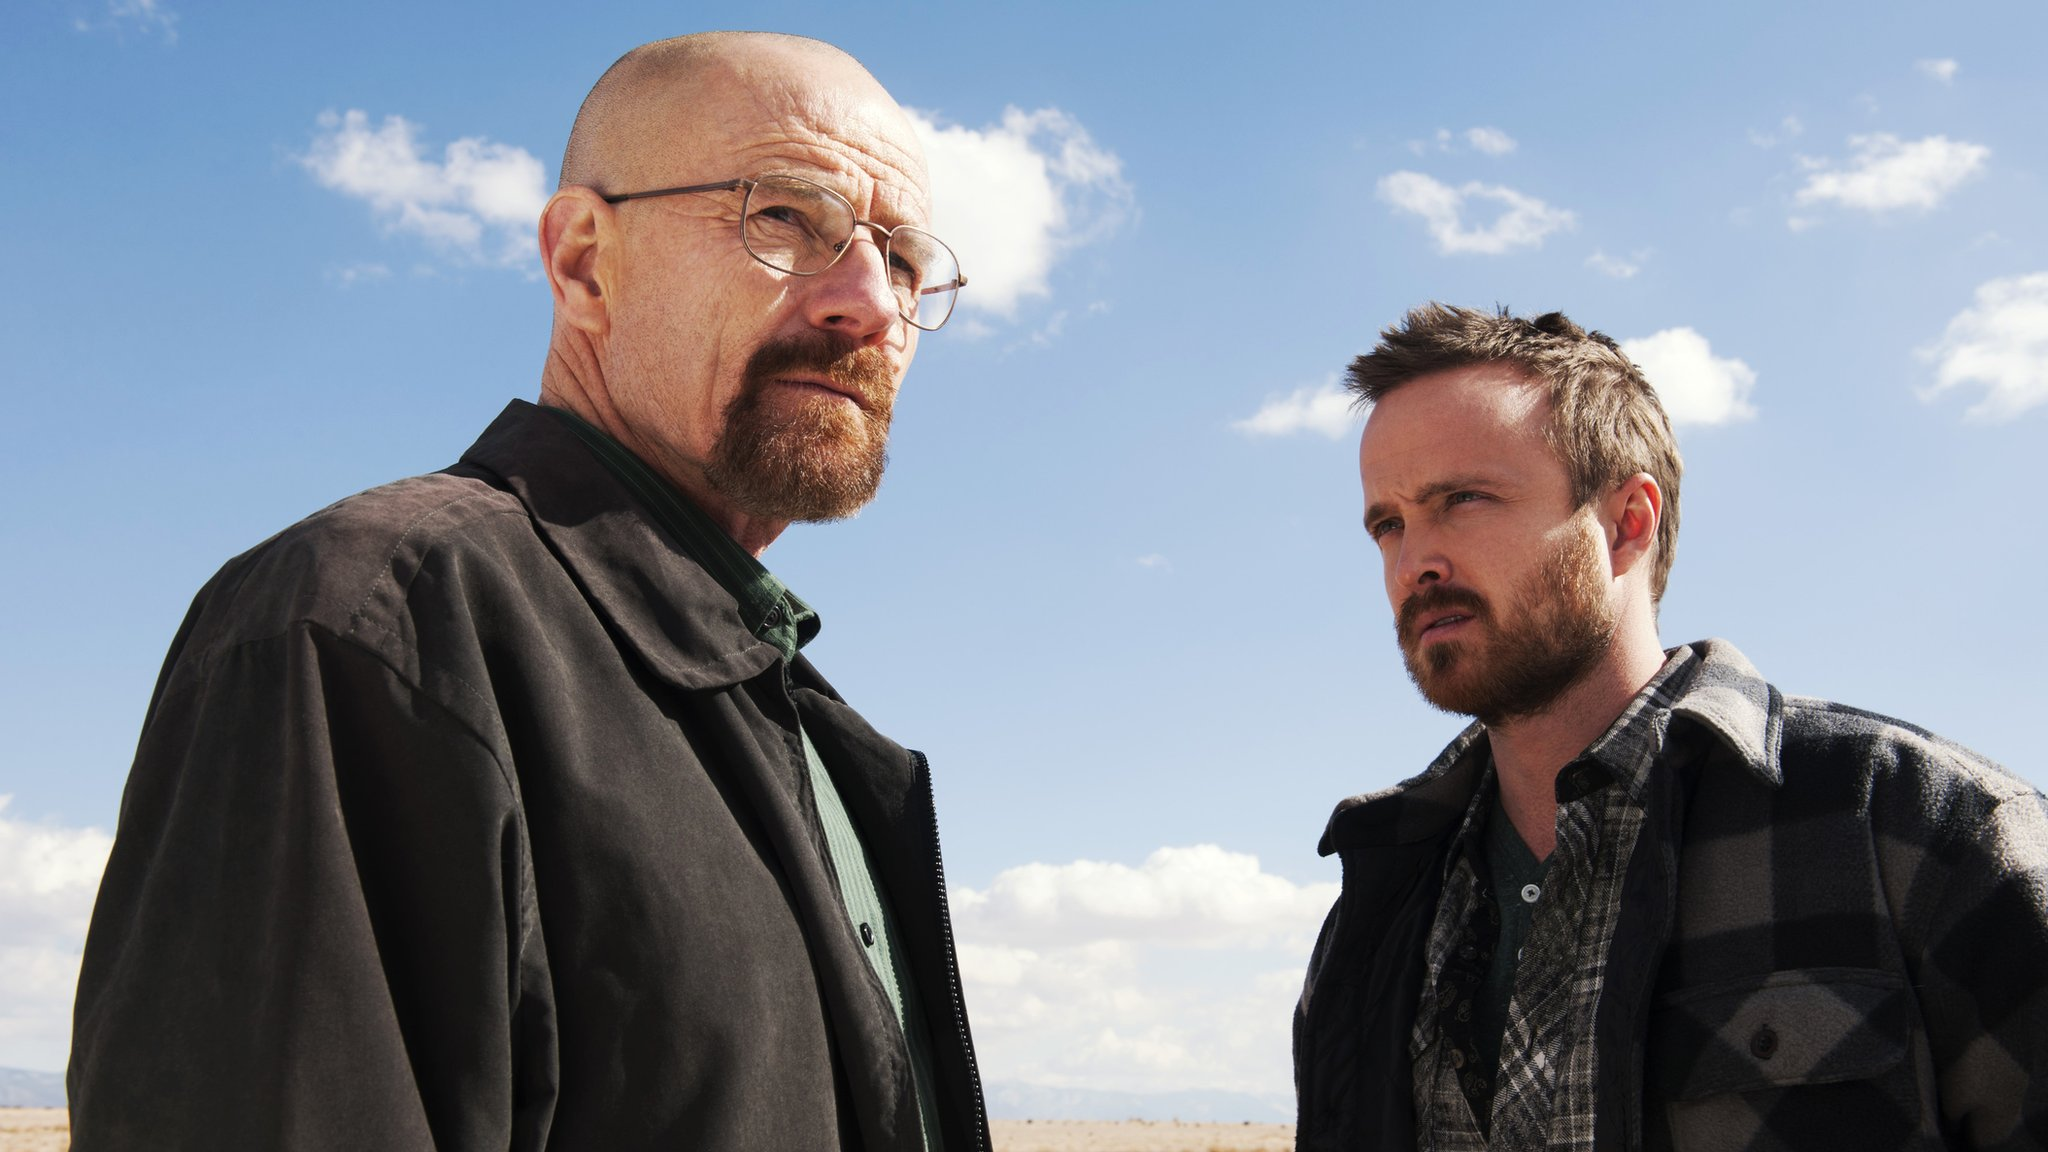 'mad' about US mother's Breaking Bad doll petition - BBC Newsbeat